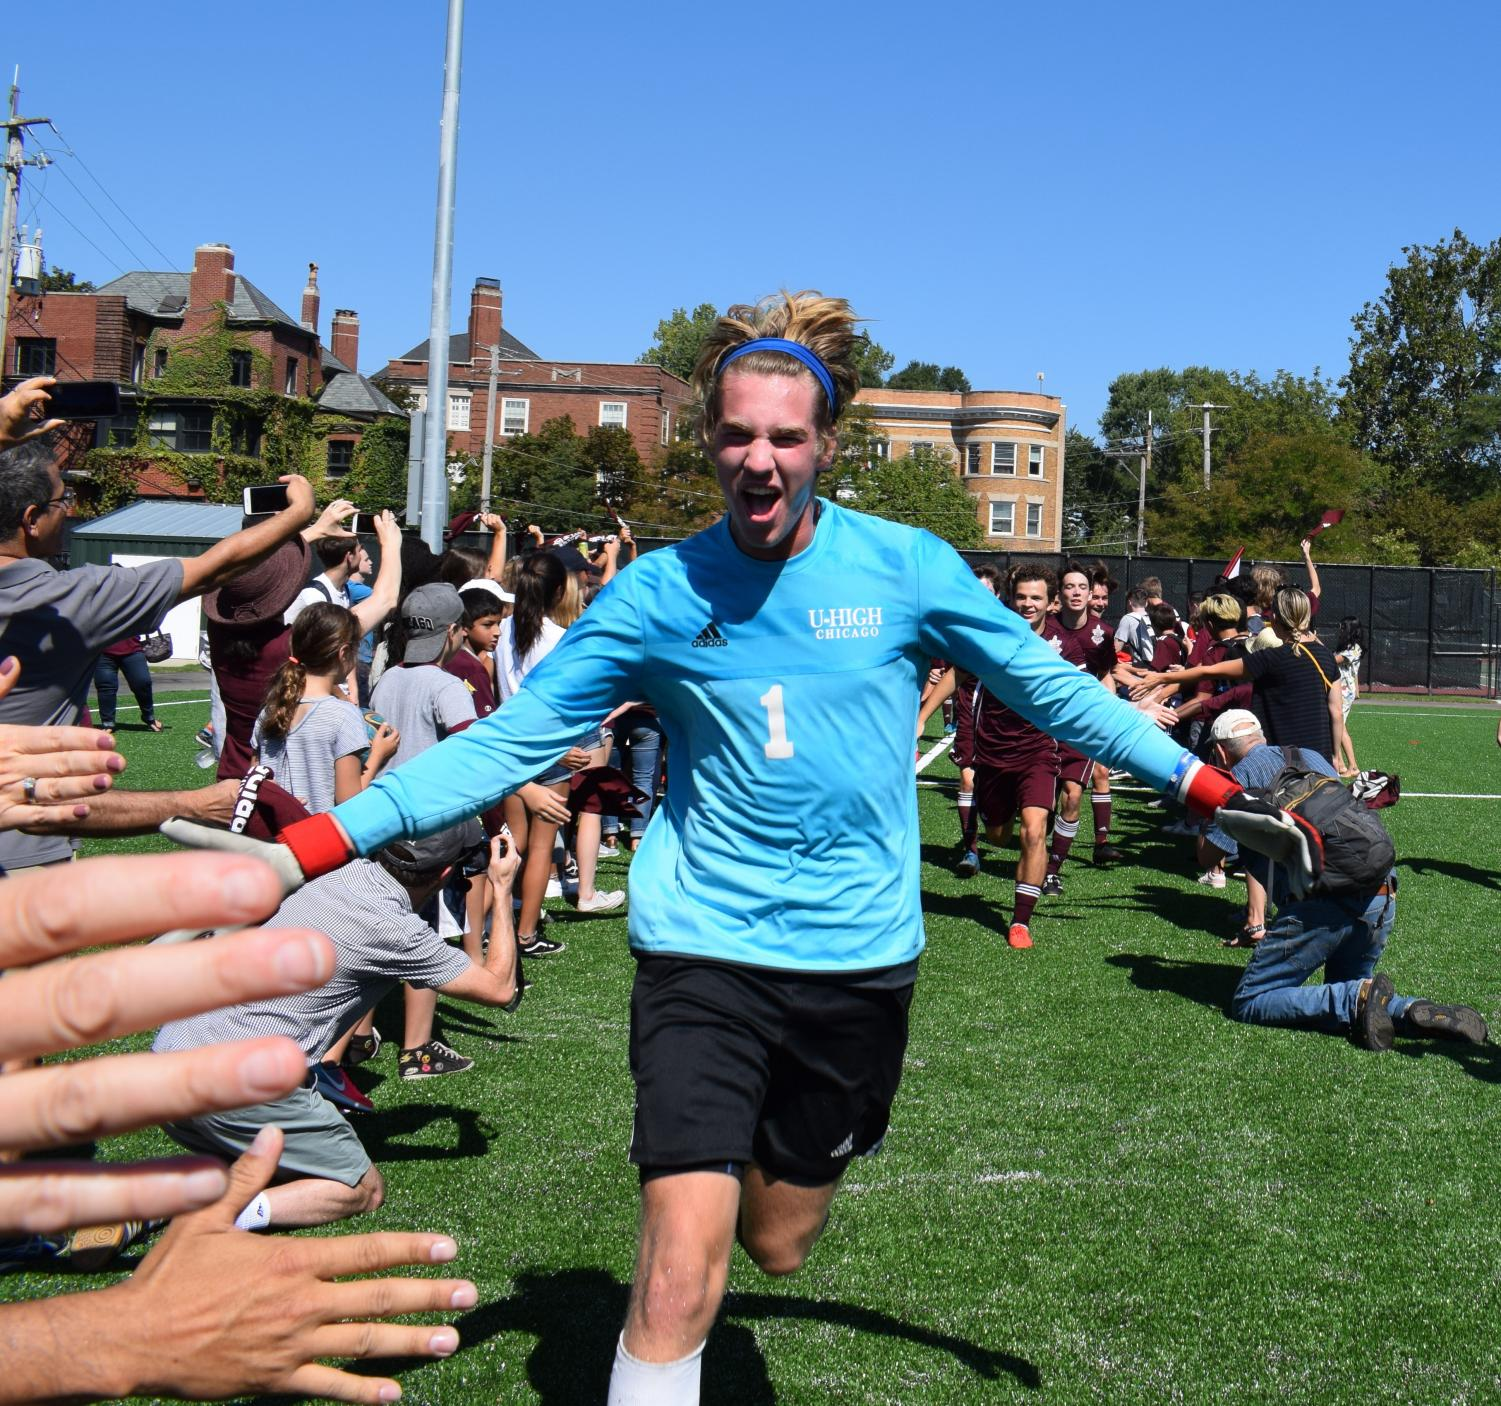 U-High Varsity Goalie Jamie Miller gives fans high fives as he leads the team onto the field.